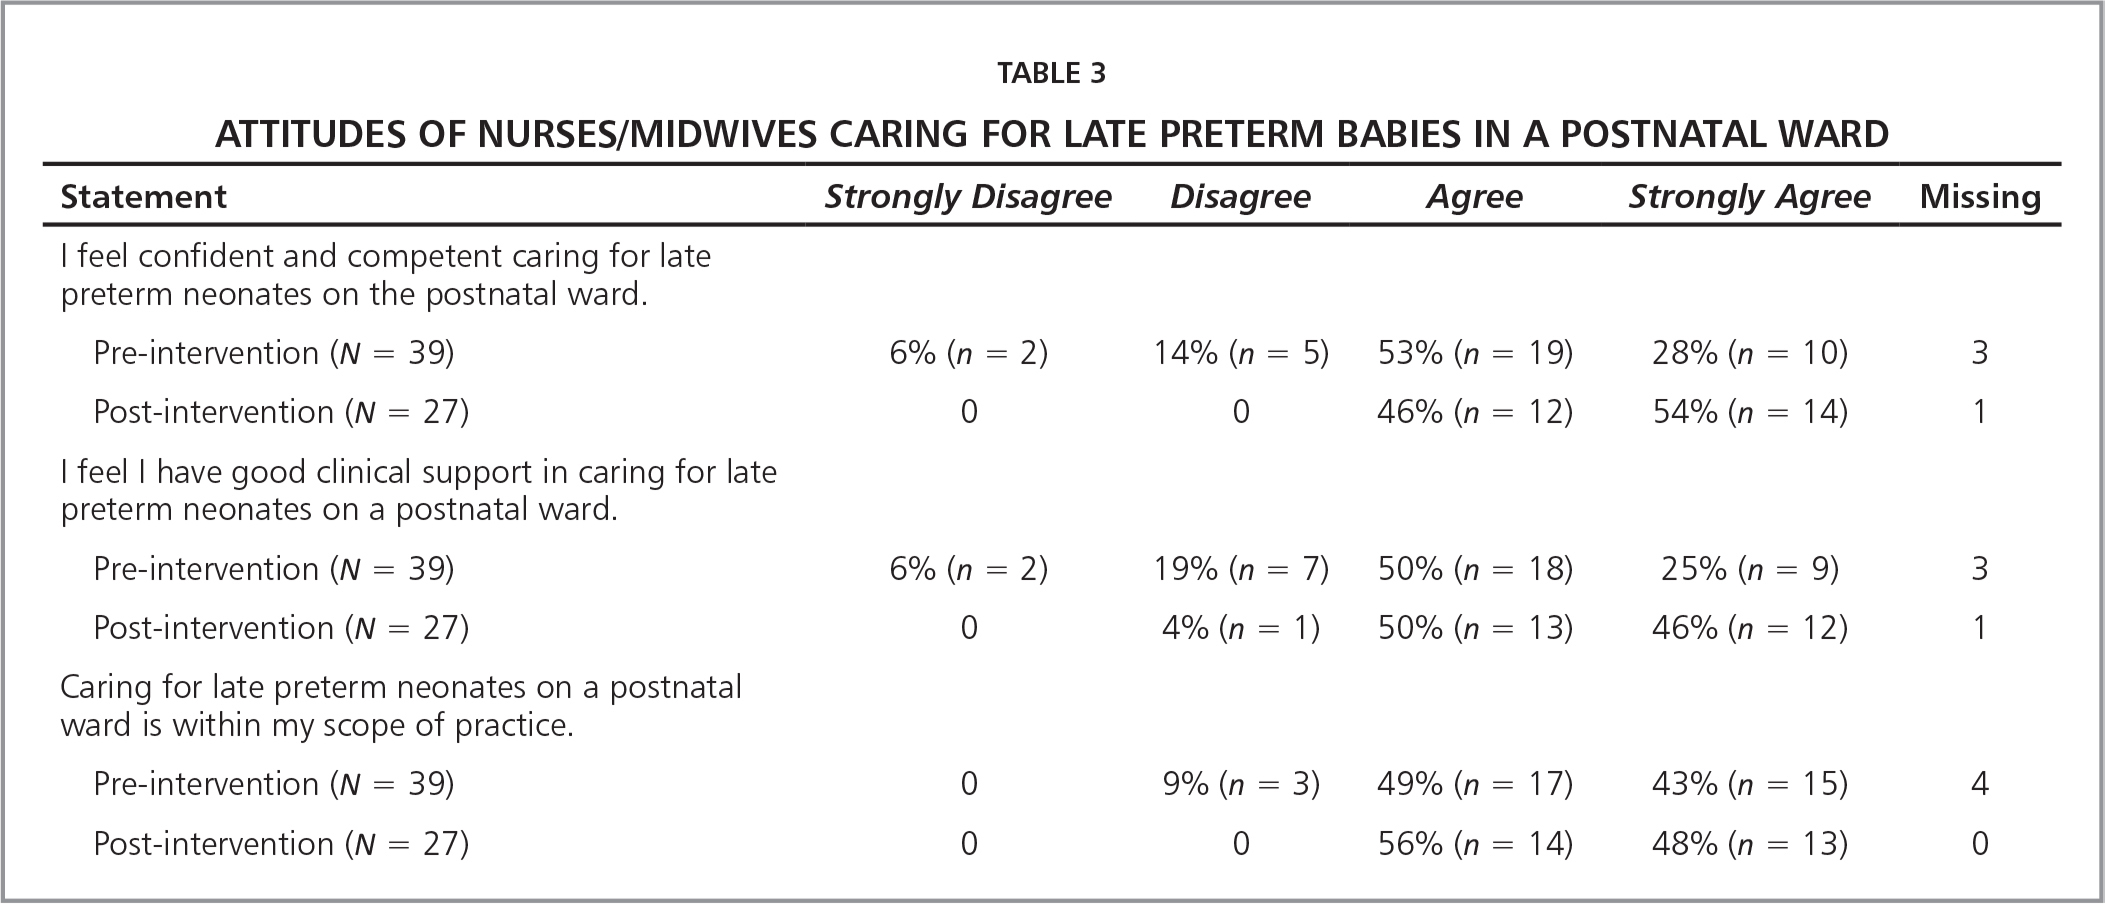 Attitudes of Nurses/Midwives Caring for Late Preterm Babies in a Postnatal Ward